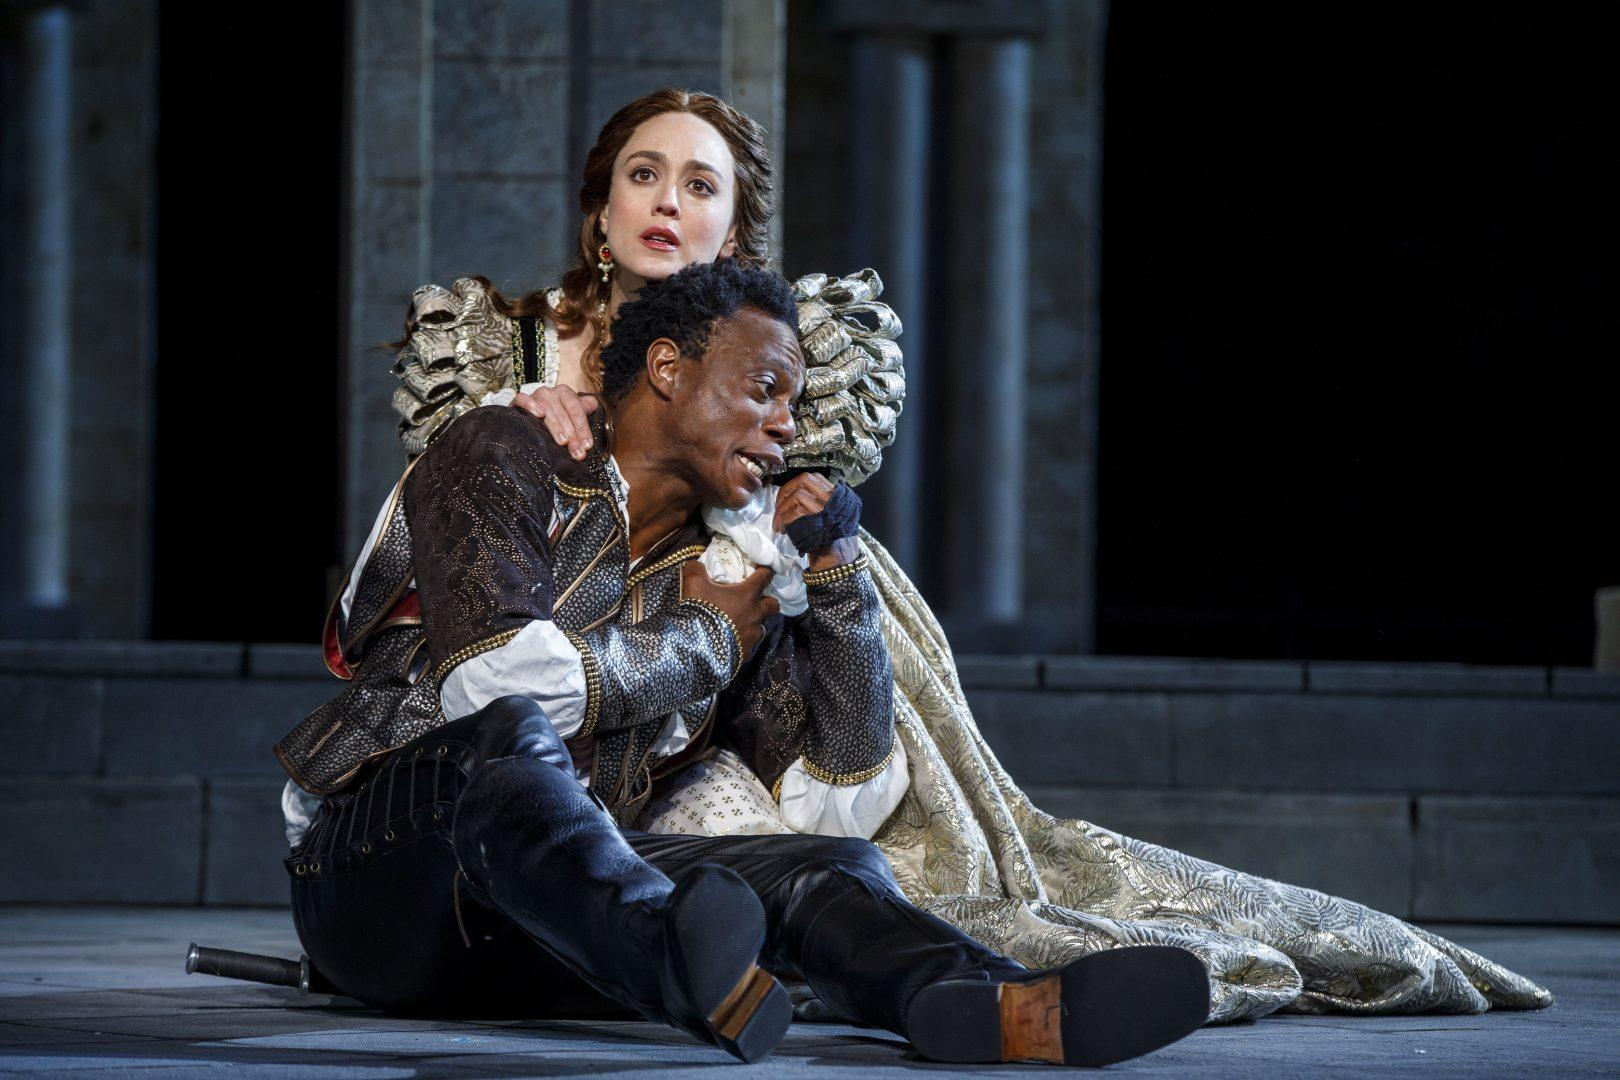 Heather Lind and Chukwudi Iwuji in the Free Shakespeare in the Park production of Othello, directed by Ruben Santiago-Hudson, running at the Delacorte Theater in Central Park through June 24. (COURTESY OF JOAN MARCUS).